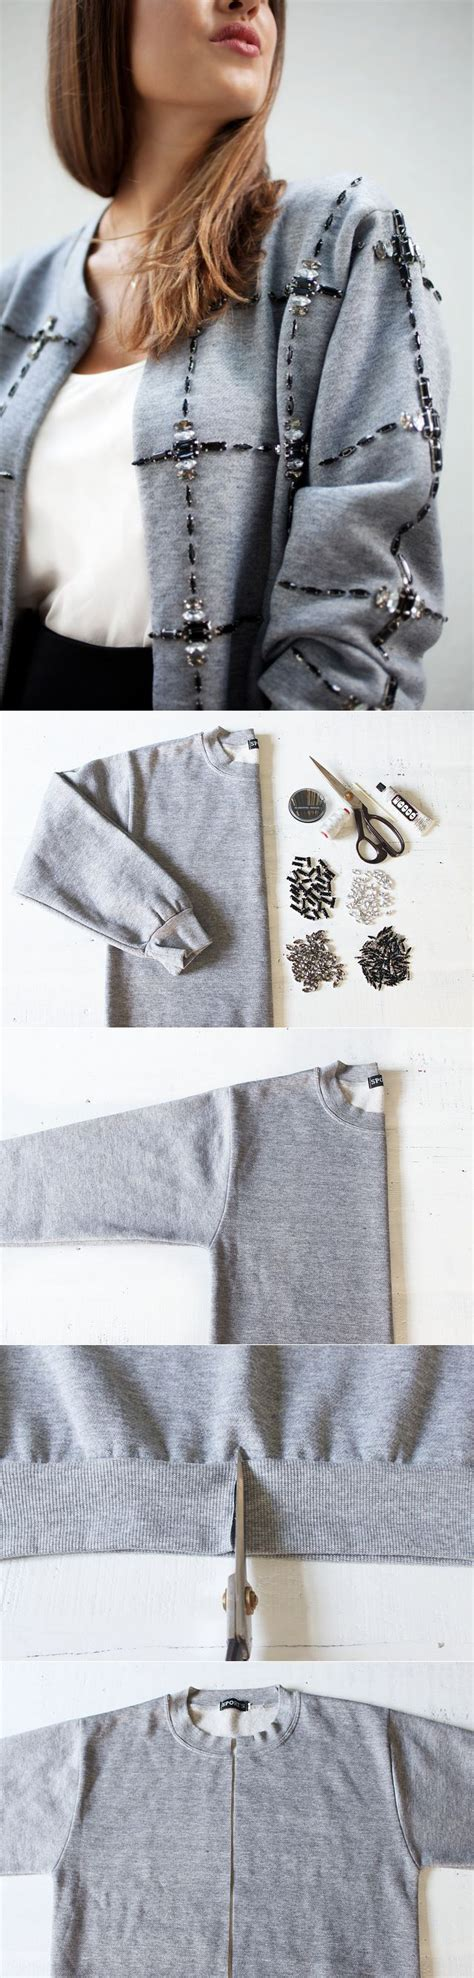 diy fashion projects 25 best ideas about diy fashion projects on pinterest